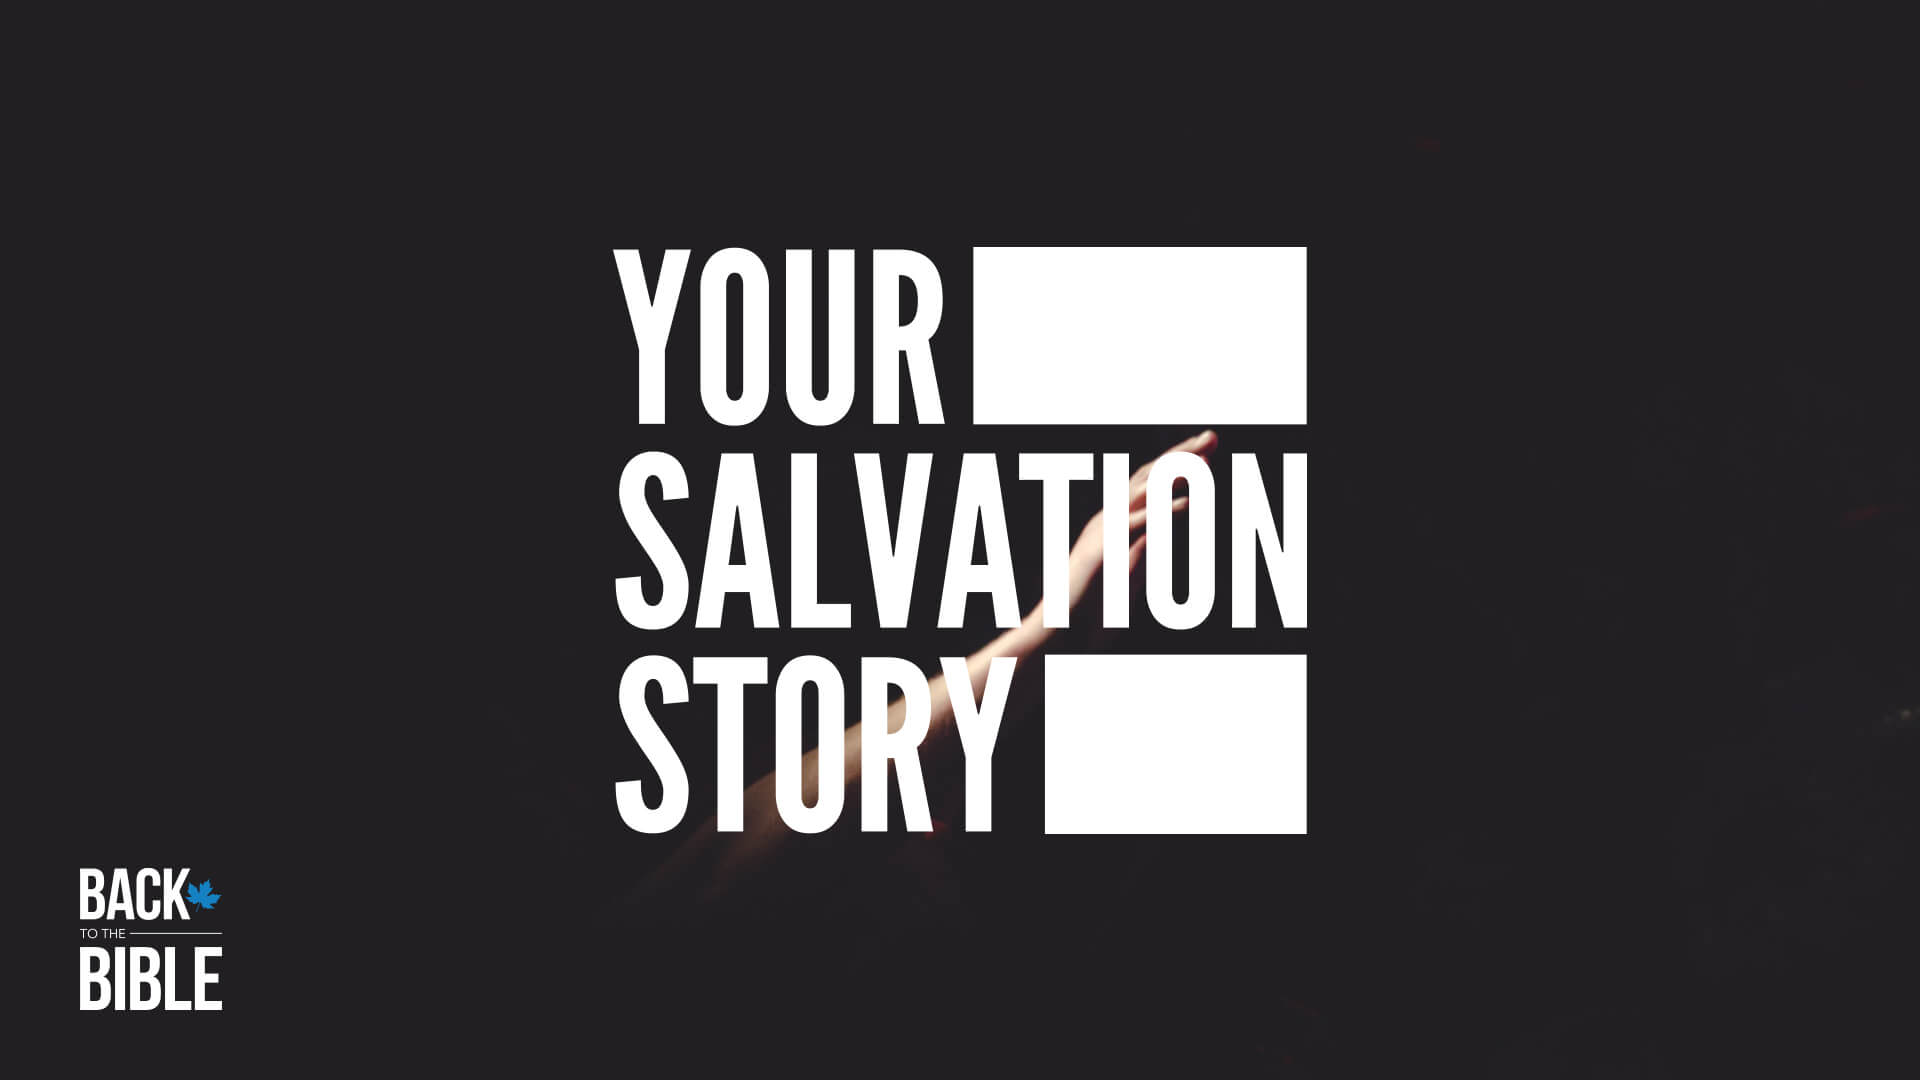 Your Salvation Story by Dr. John Neufeld | Back to the Bible Canada